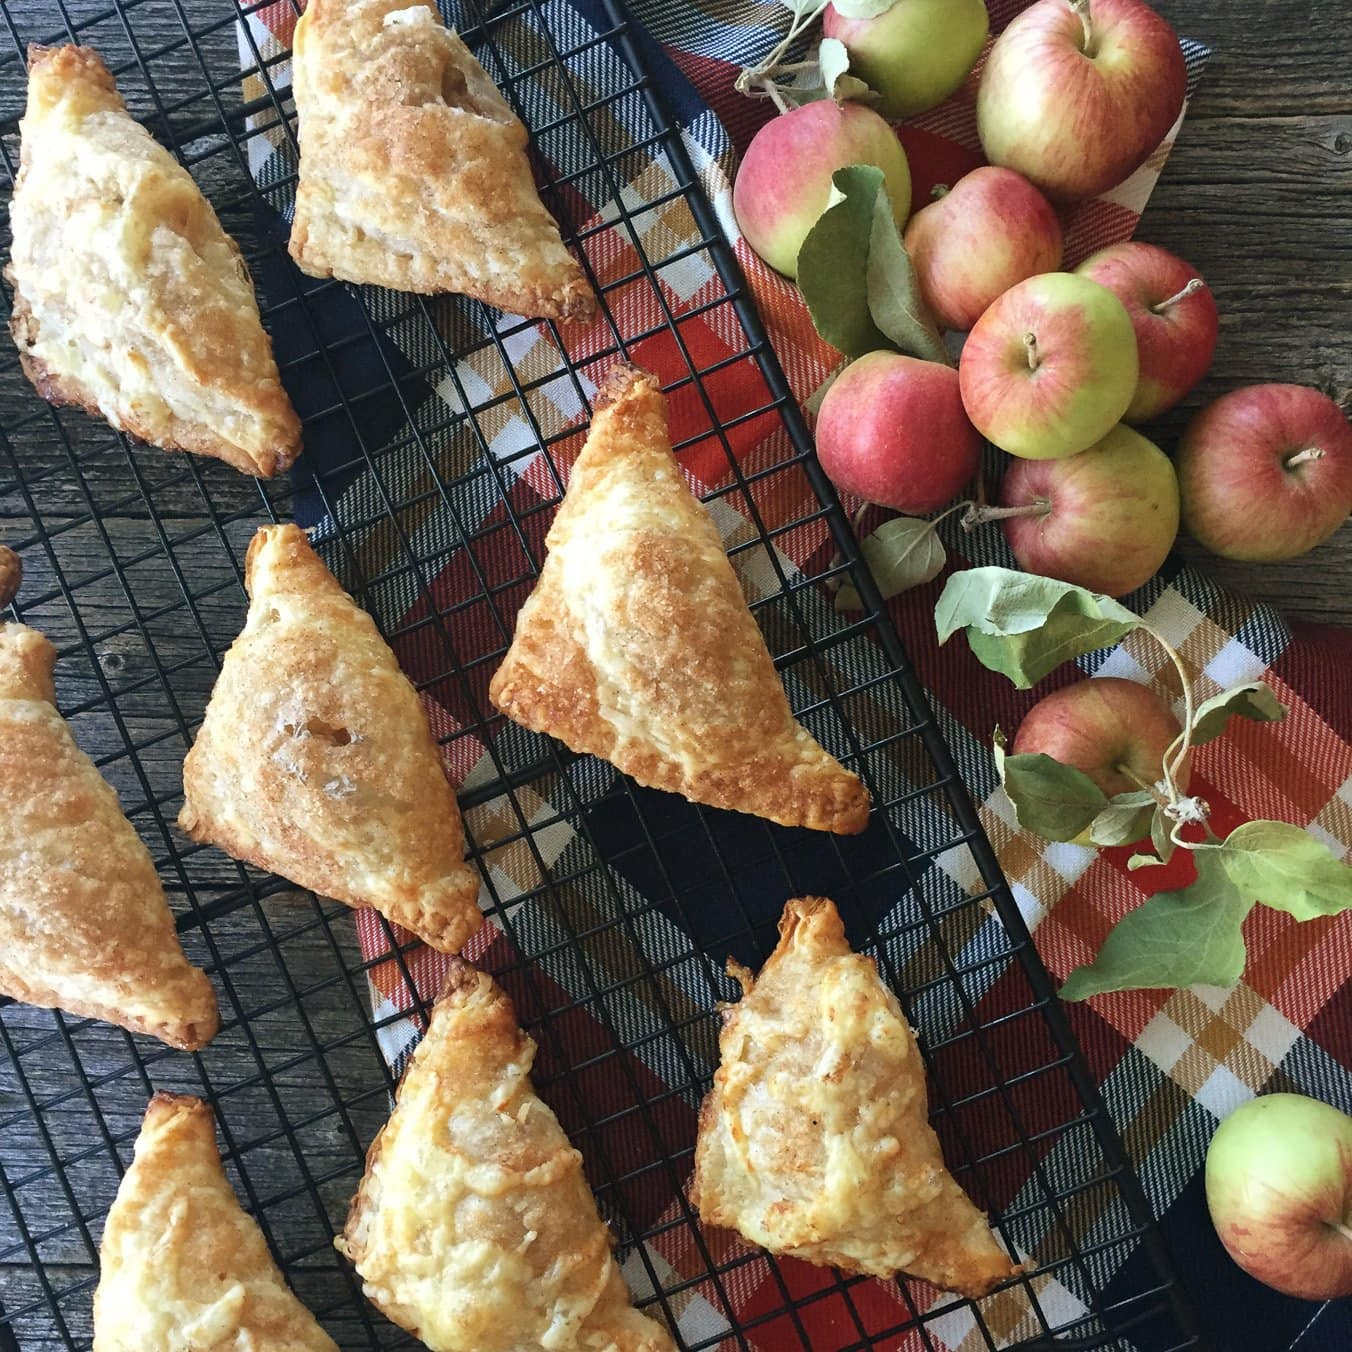 A cooling rack with apple turnovers